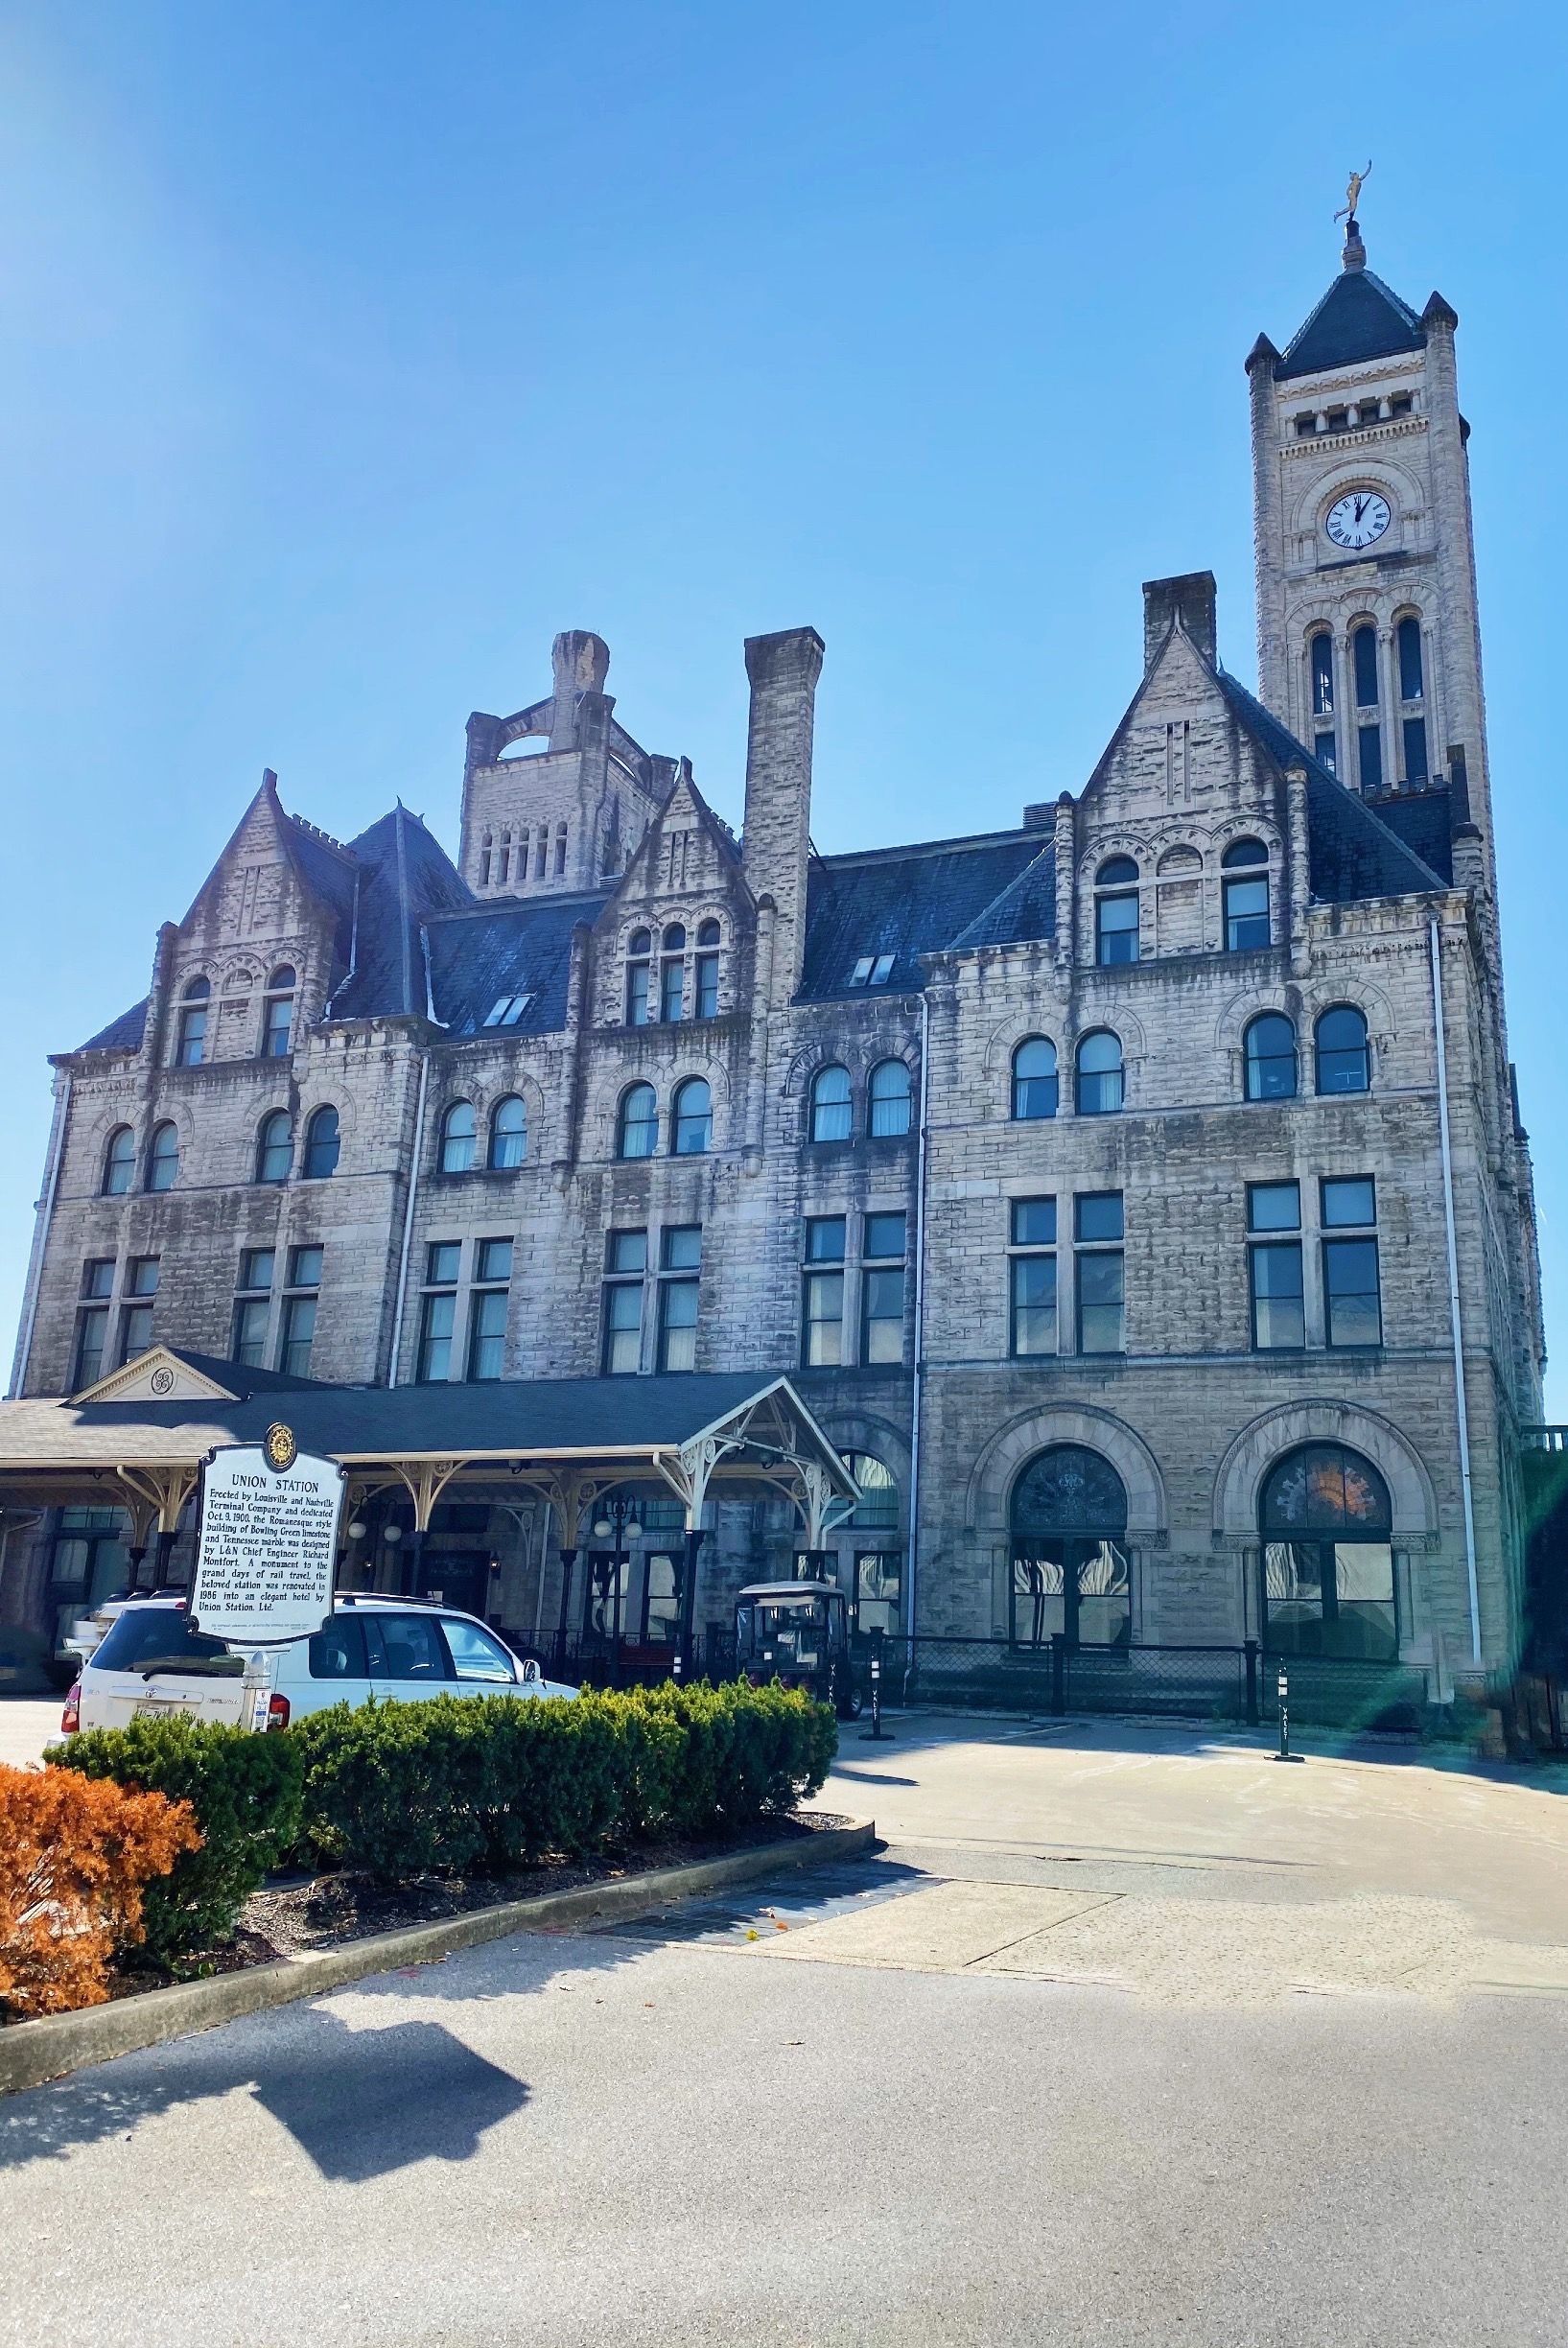 My Stay at the Union Station Hotel in Nashville